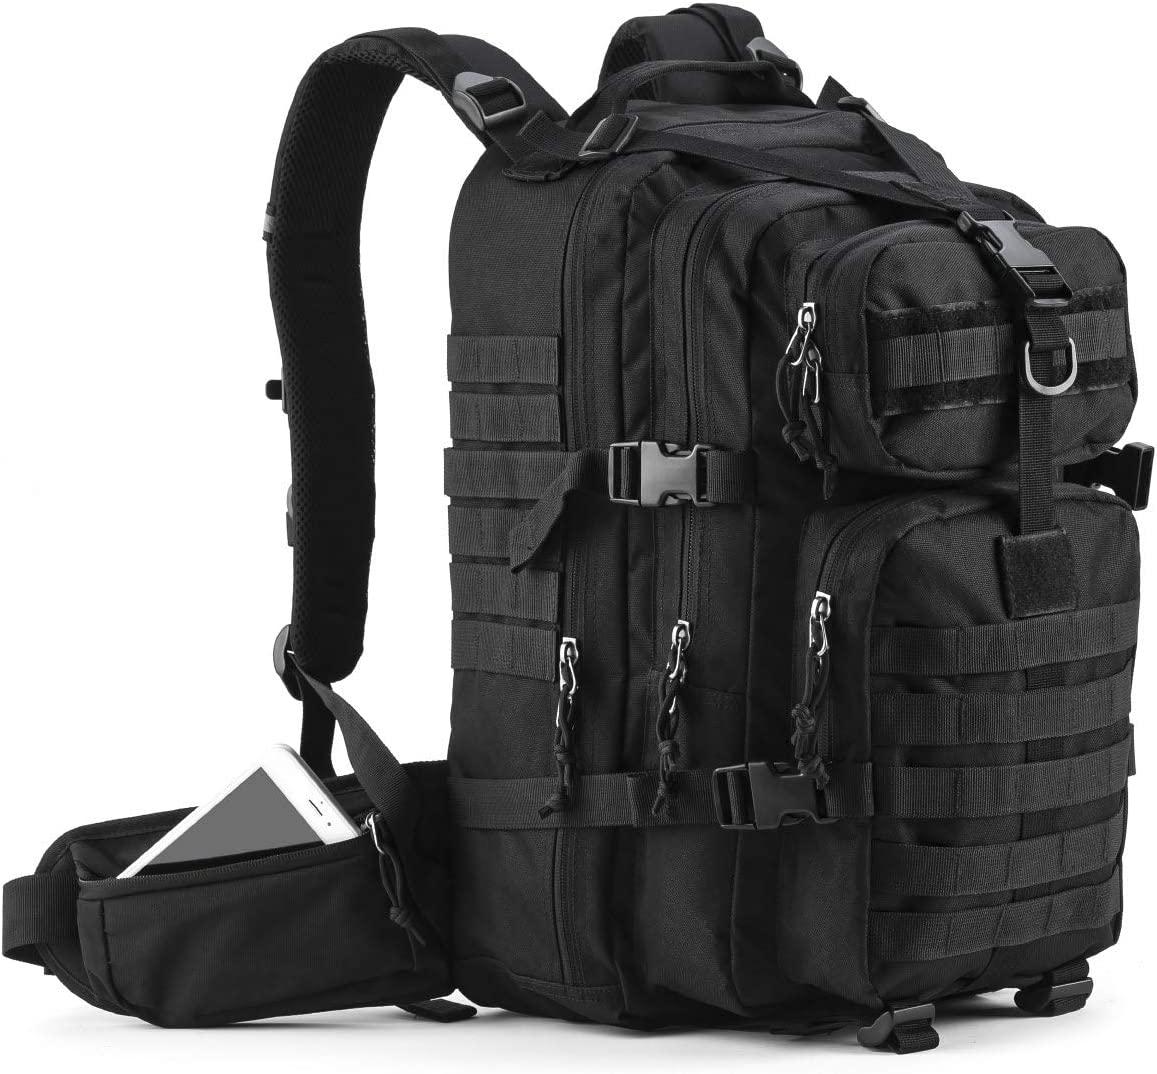 Gelindo Military Tactical Industry No. 1 Max 74% OFF Backpack Army Bag Assu Molle Rucksack